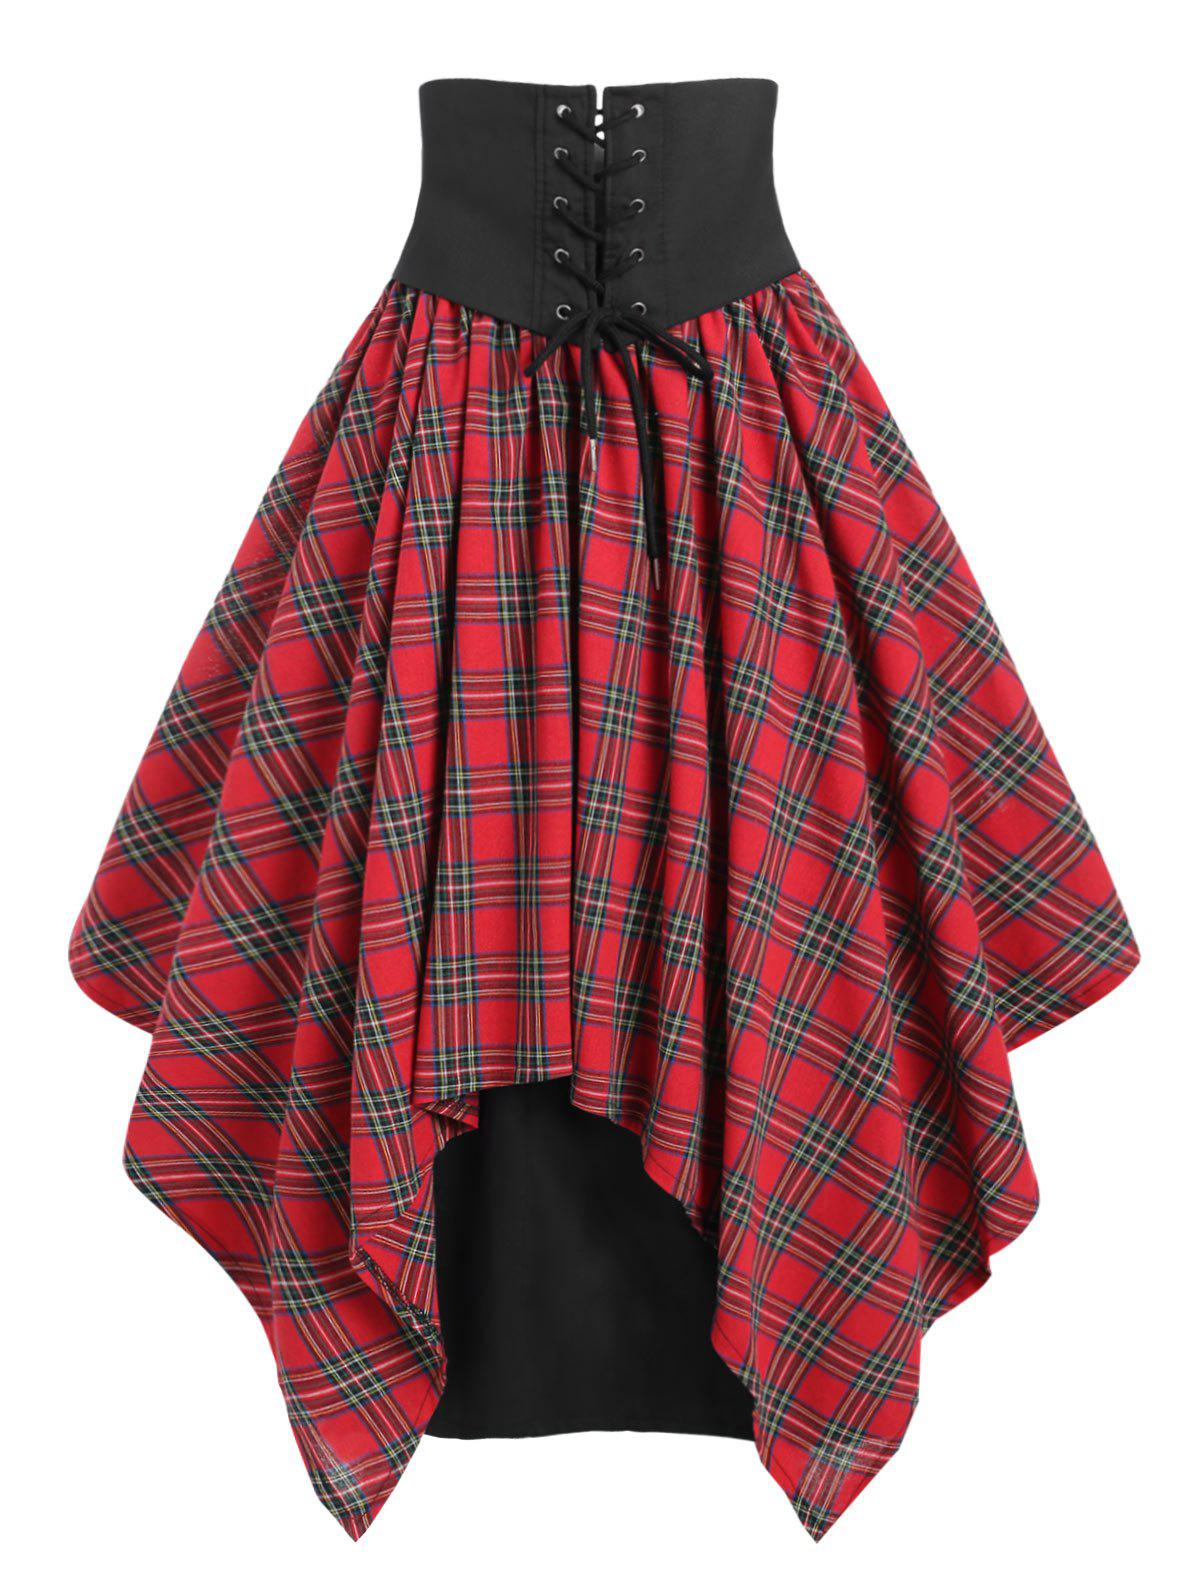 Chic Lace Up Belted Plaid Maxi Skirt